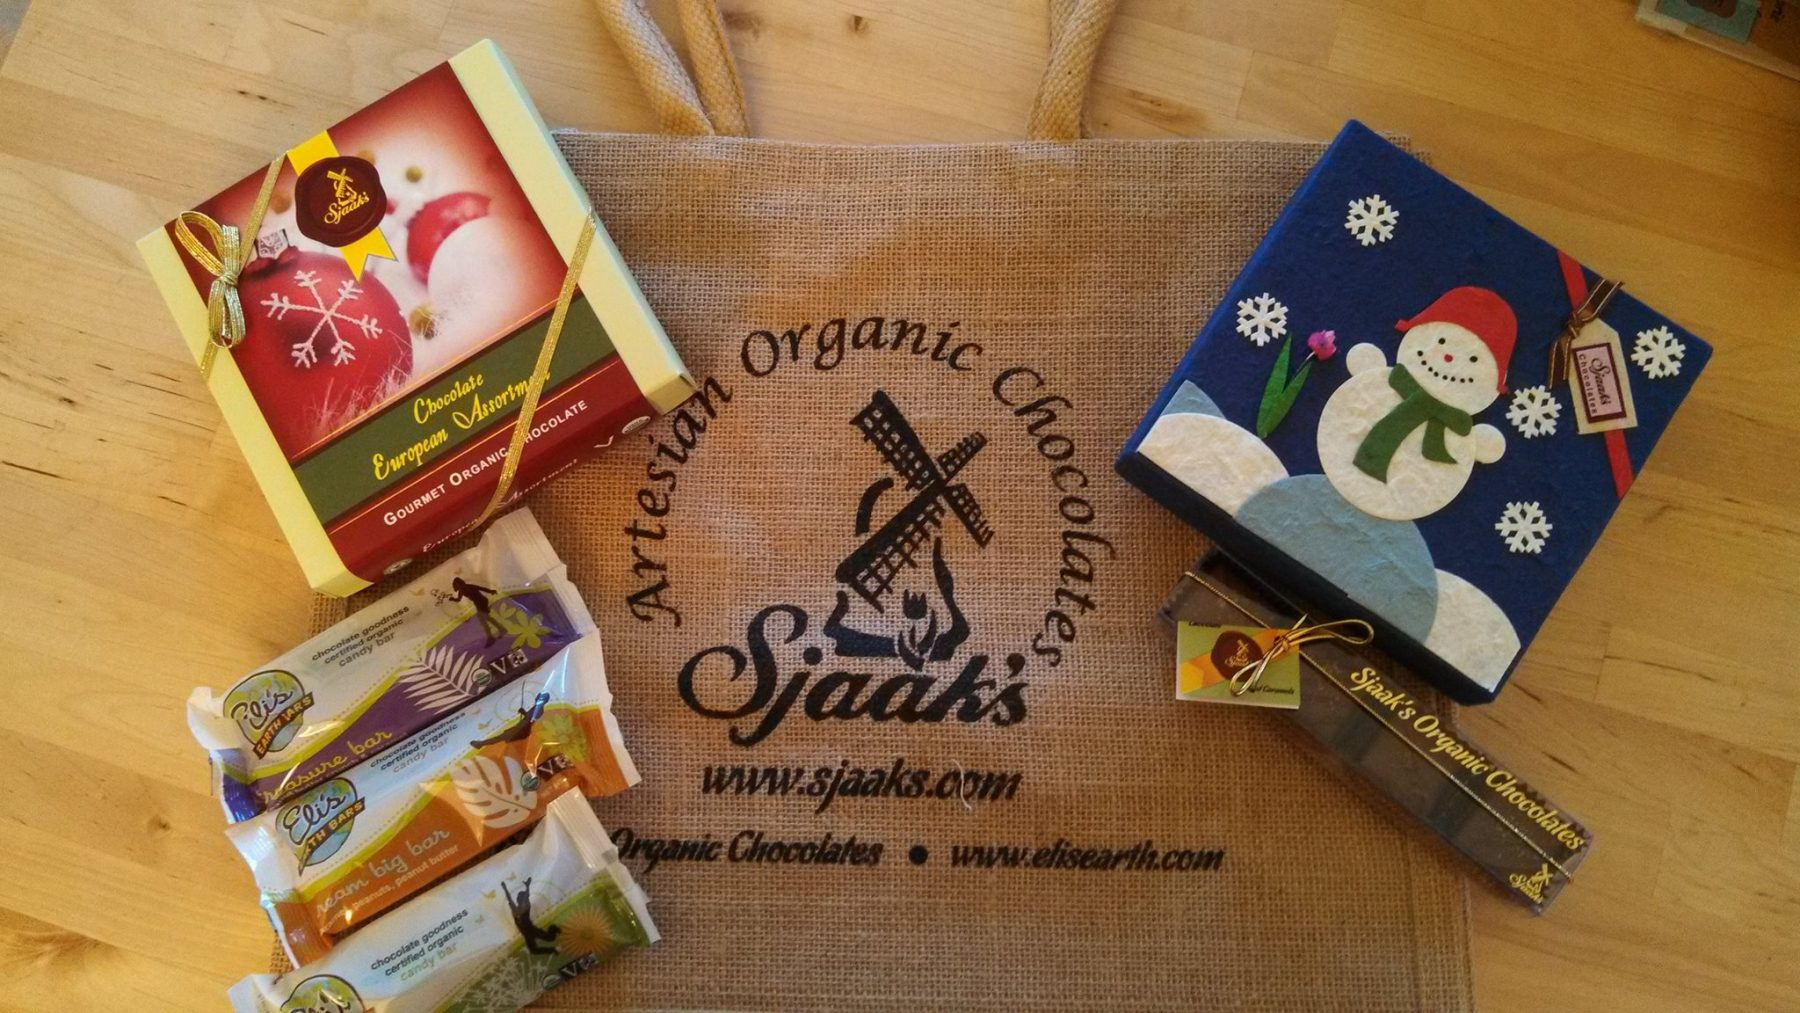 Win Free Vegan Chocolate from Sjaak's!!!!